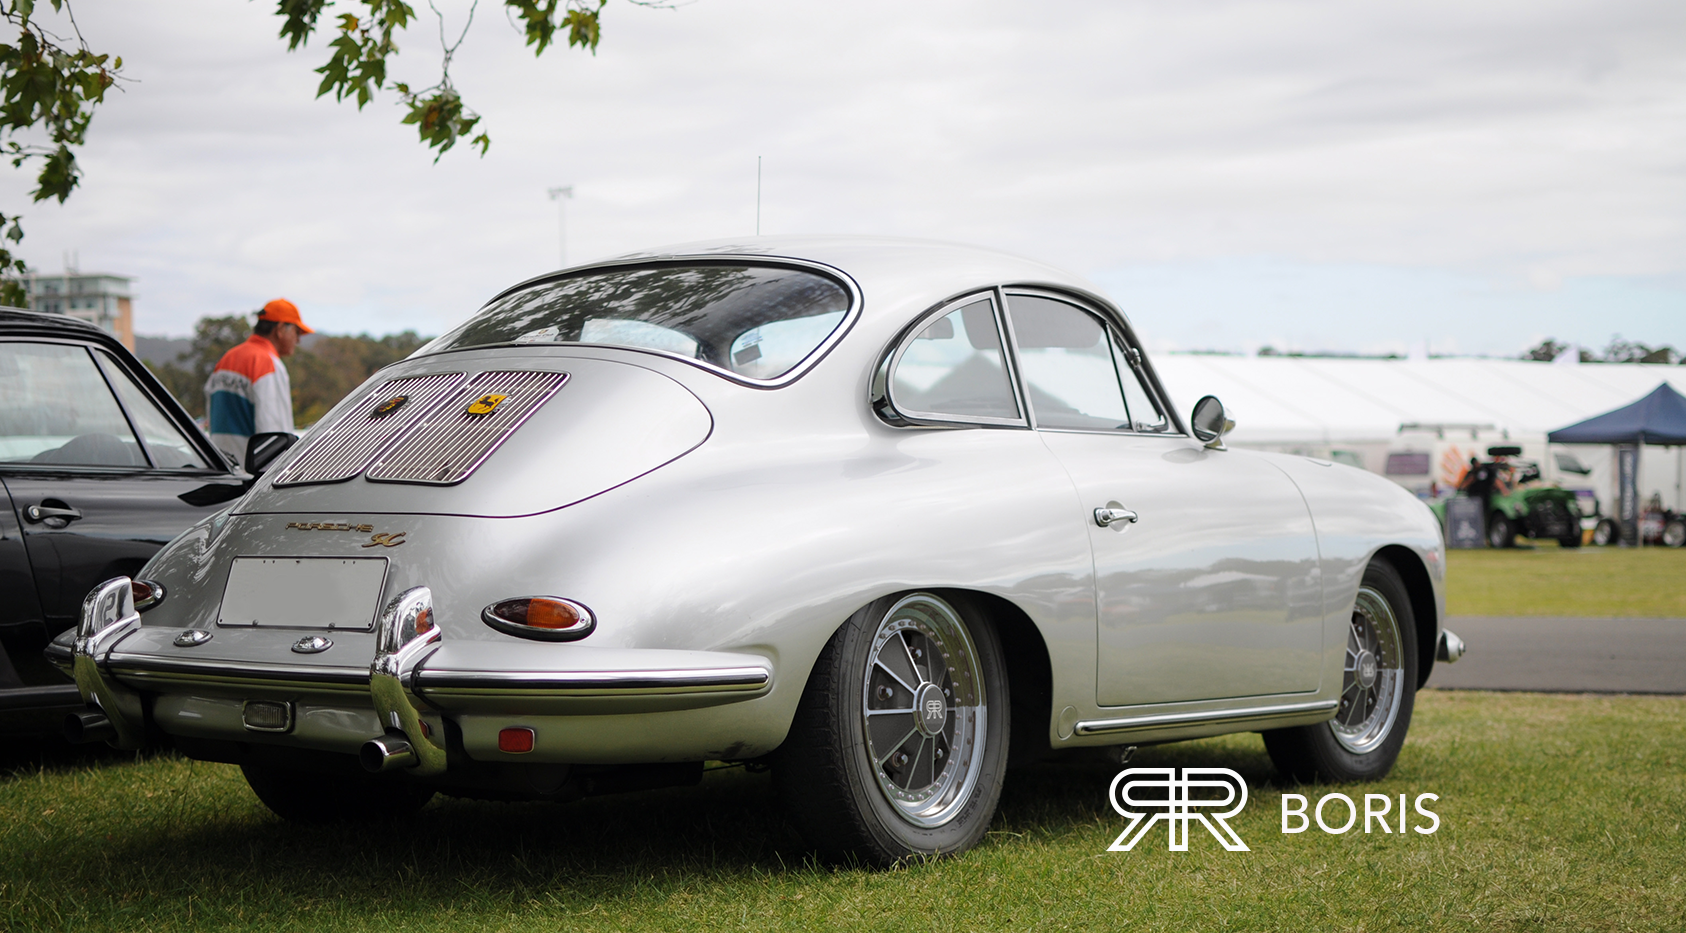 Silver 356 Porsche with BORIS